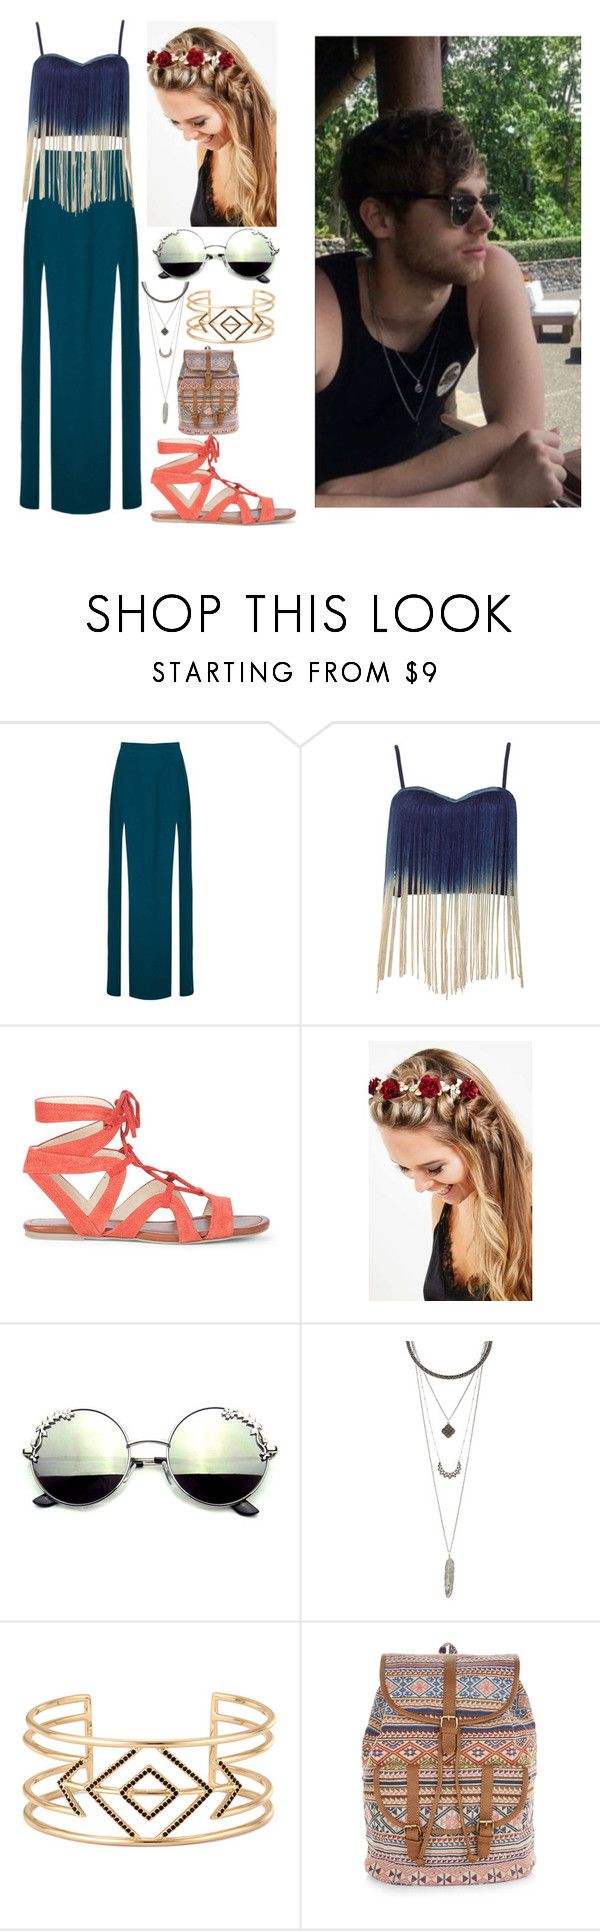 """""""Samantha Sellinger Coachella with Luke"""" by psycho-alien-deer05 ❤ liked on Polyvore featuring Topshop, Rare London, Sole Society, Johnny Loves Rosie, Charlotte Russe, Stella & Dot and Accessorize"""